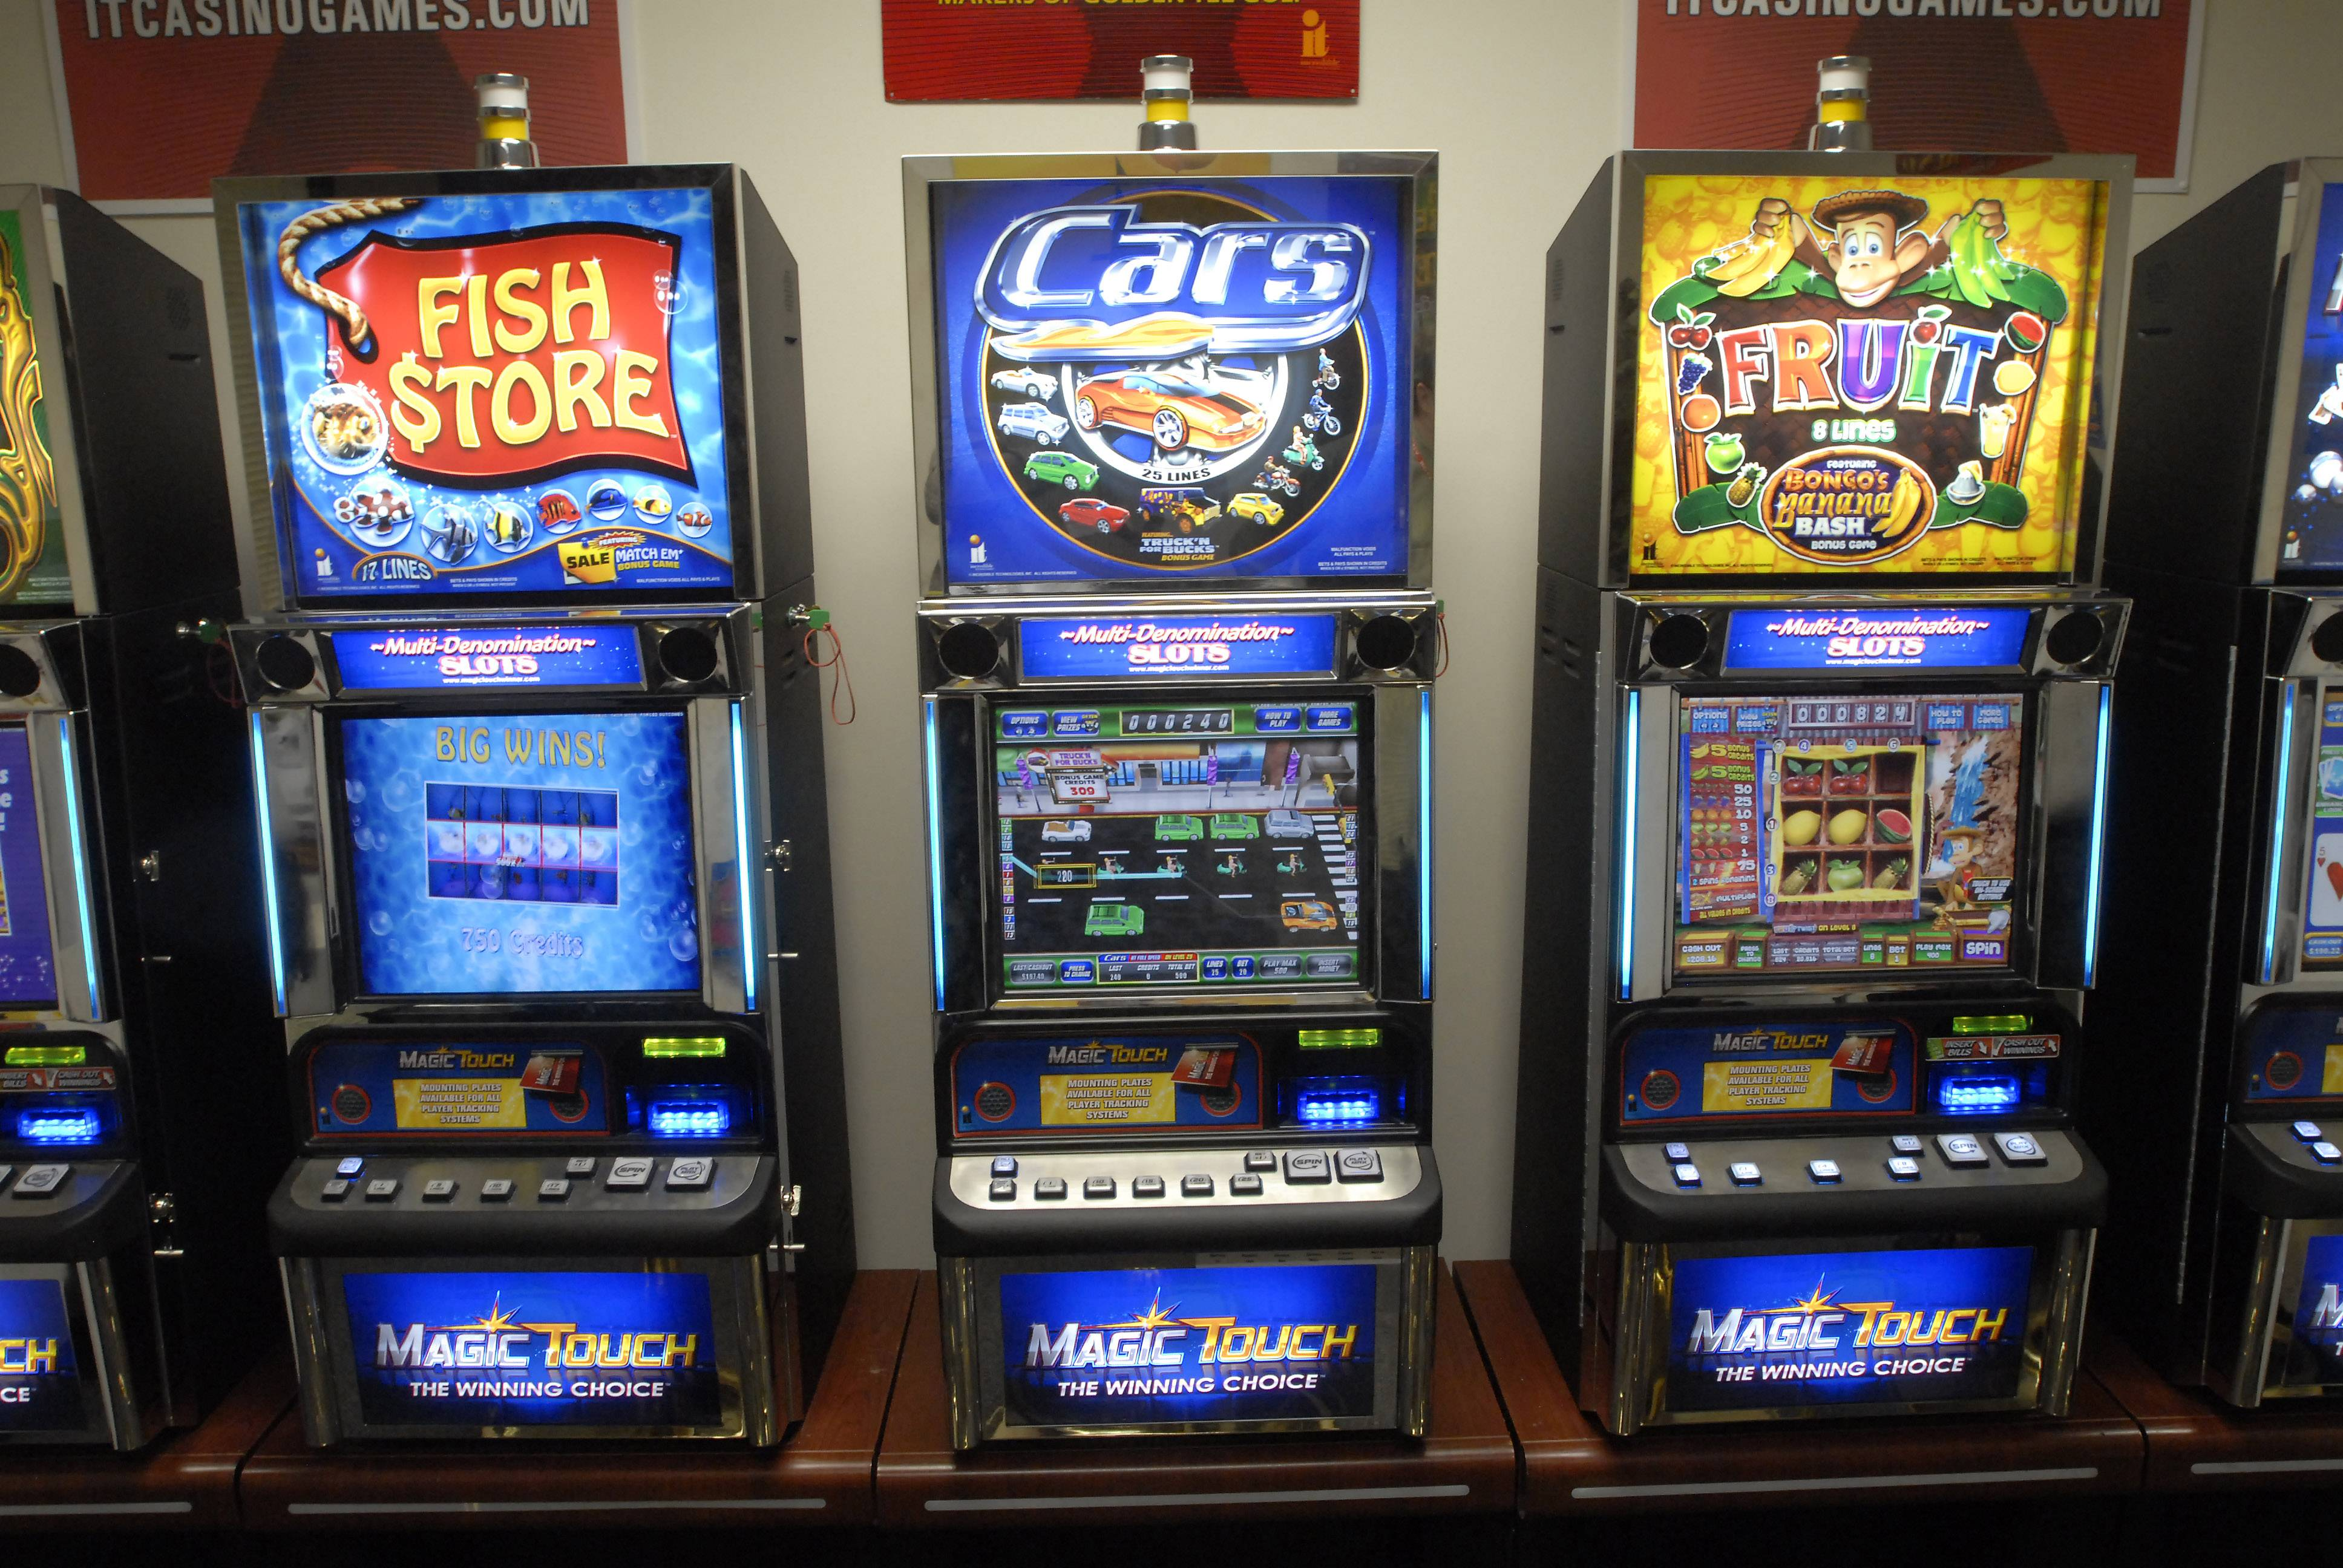 Responding to feedback from residents, Lombard's village board has agreed to keep the town's ban on video gambling in place.